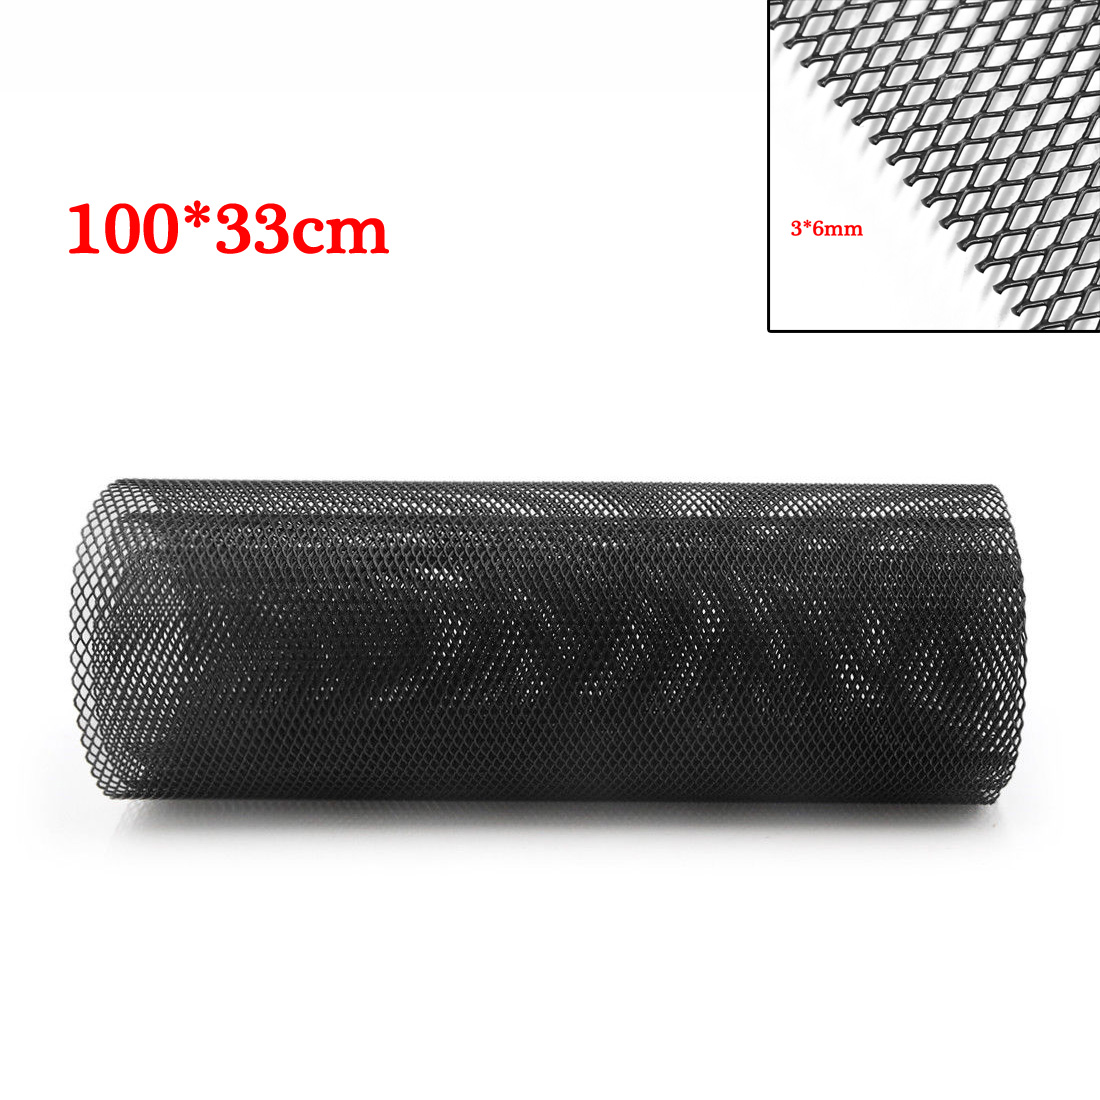 40x13 Car Mesh Grille Black Rhombic Sheet Aluminum Alloy Fashion